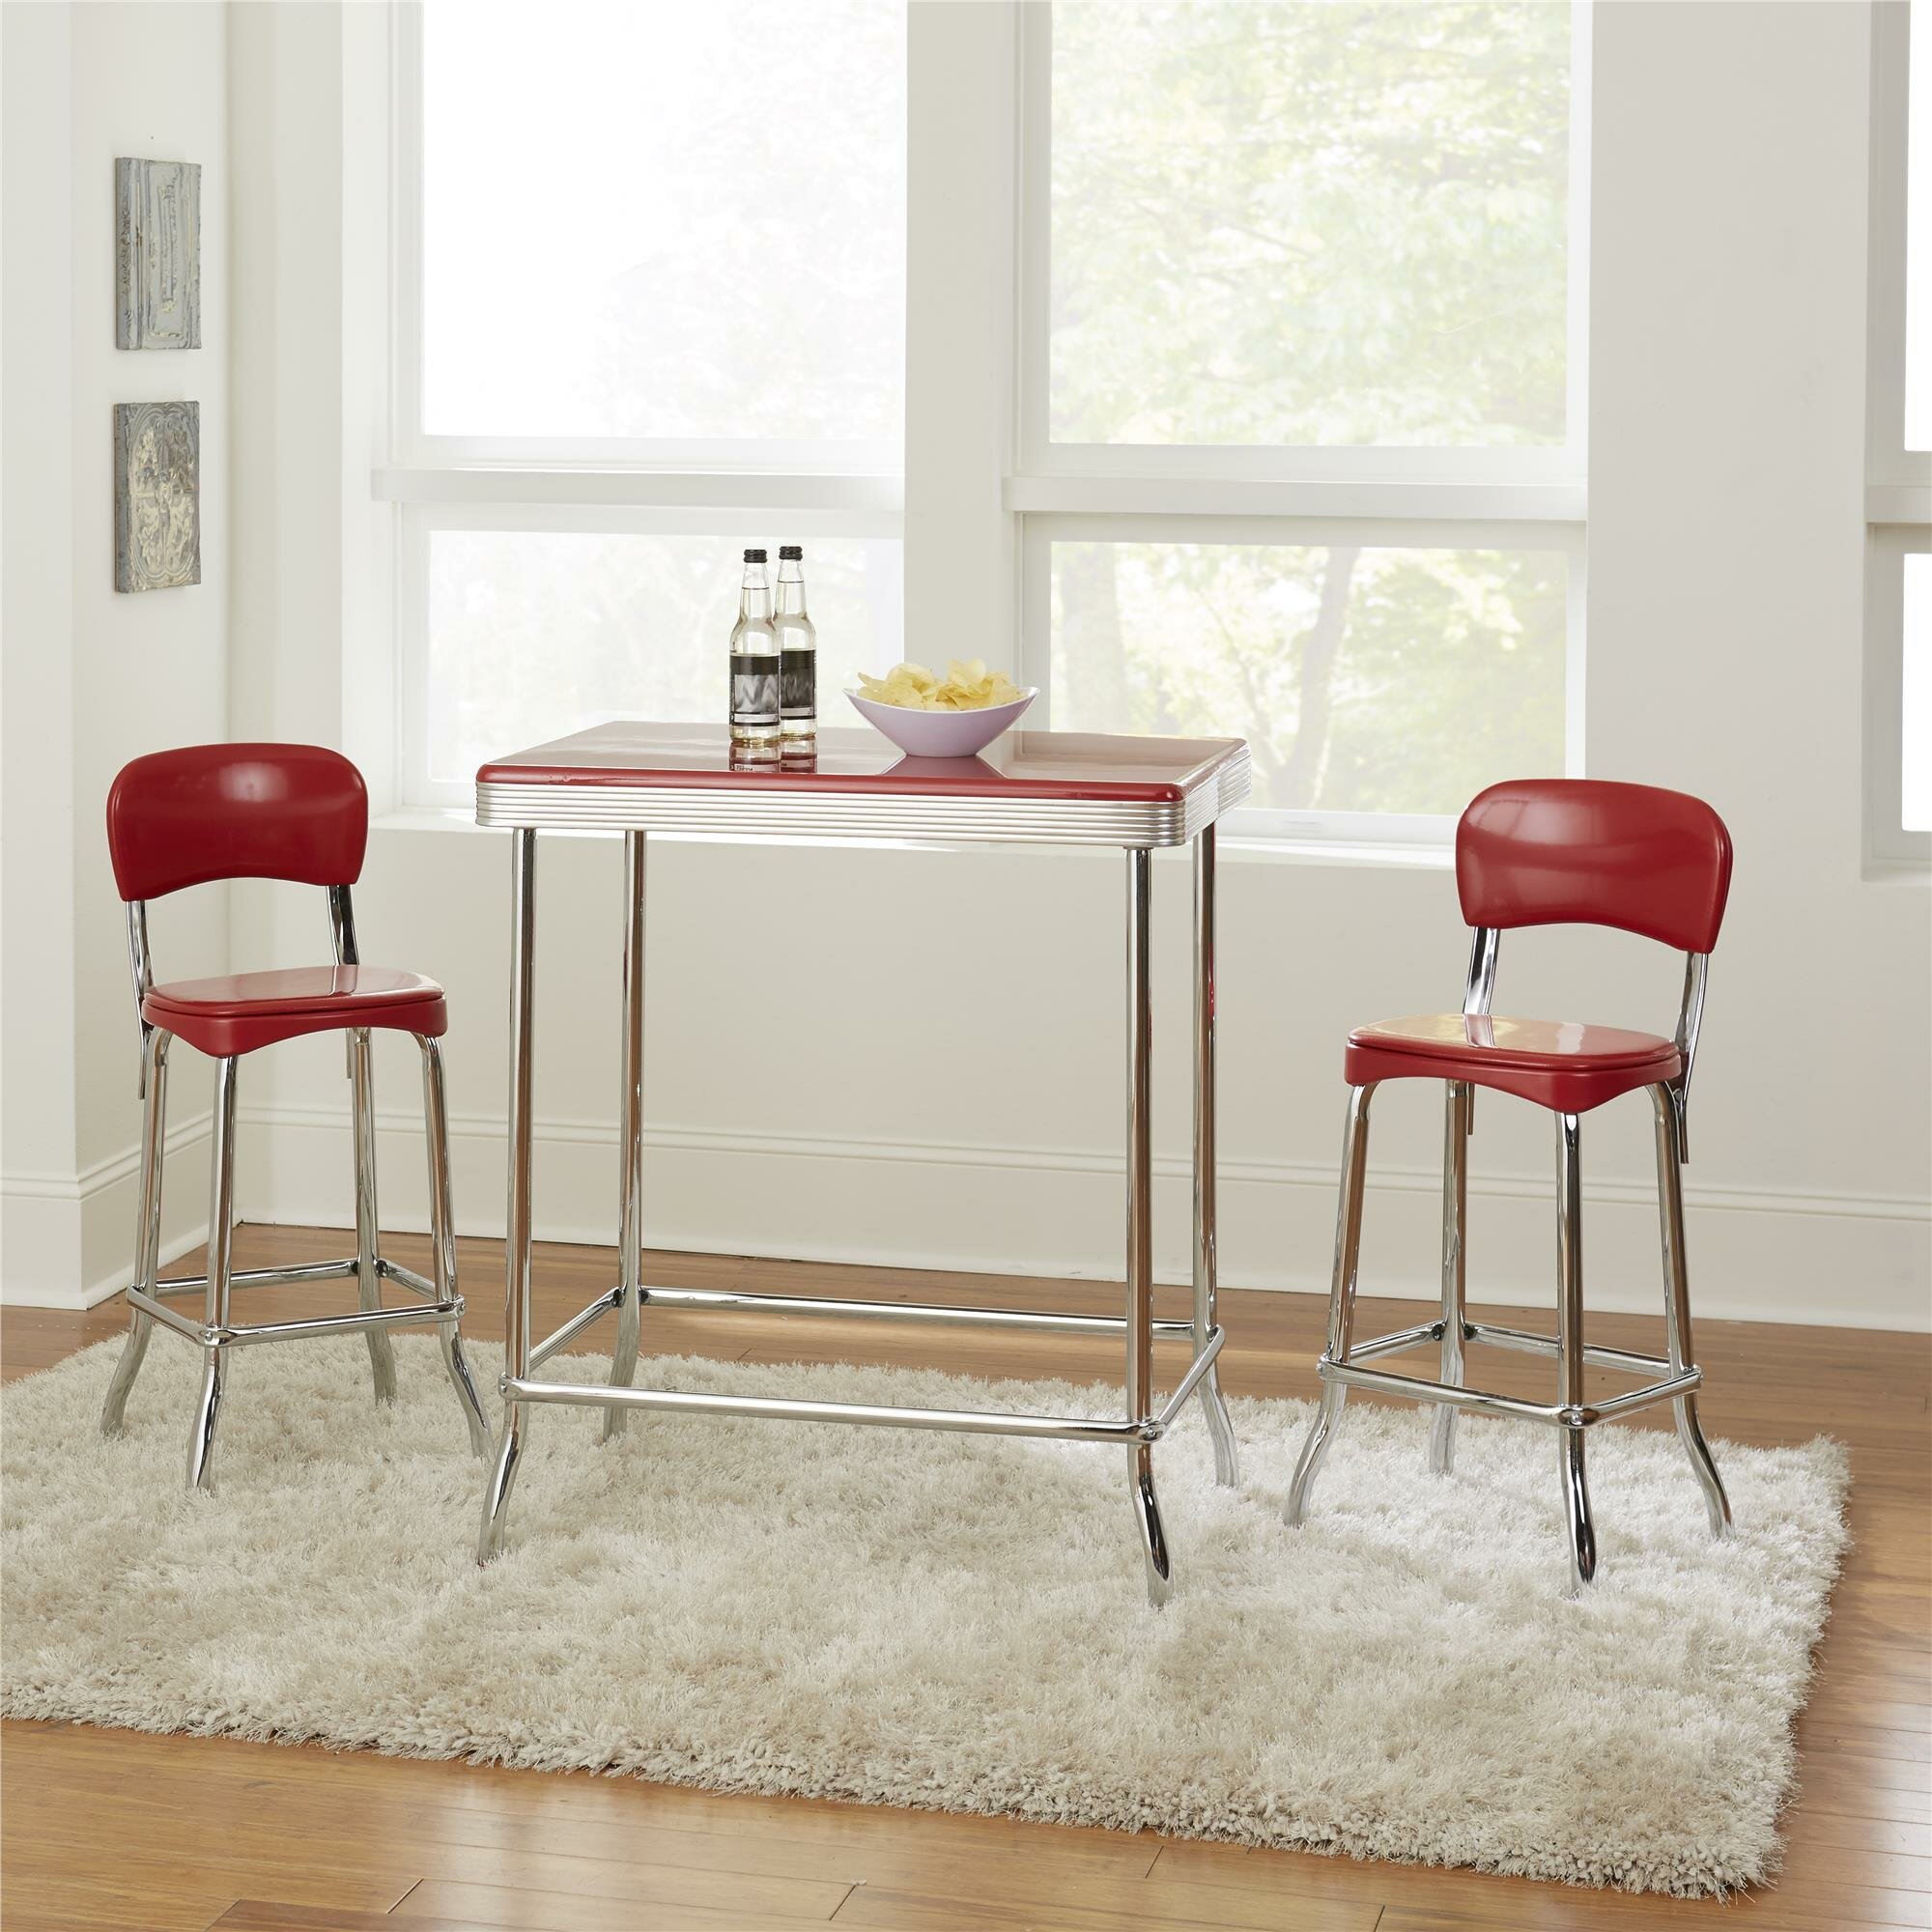 Ordinaire Ebern Designs Bate Red Retro 3 Piece Dining Set U0026 Reviews | Wayfair